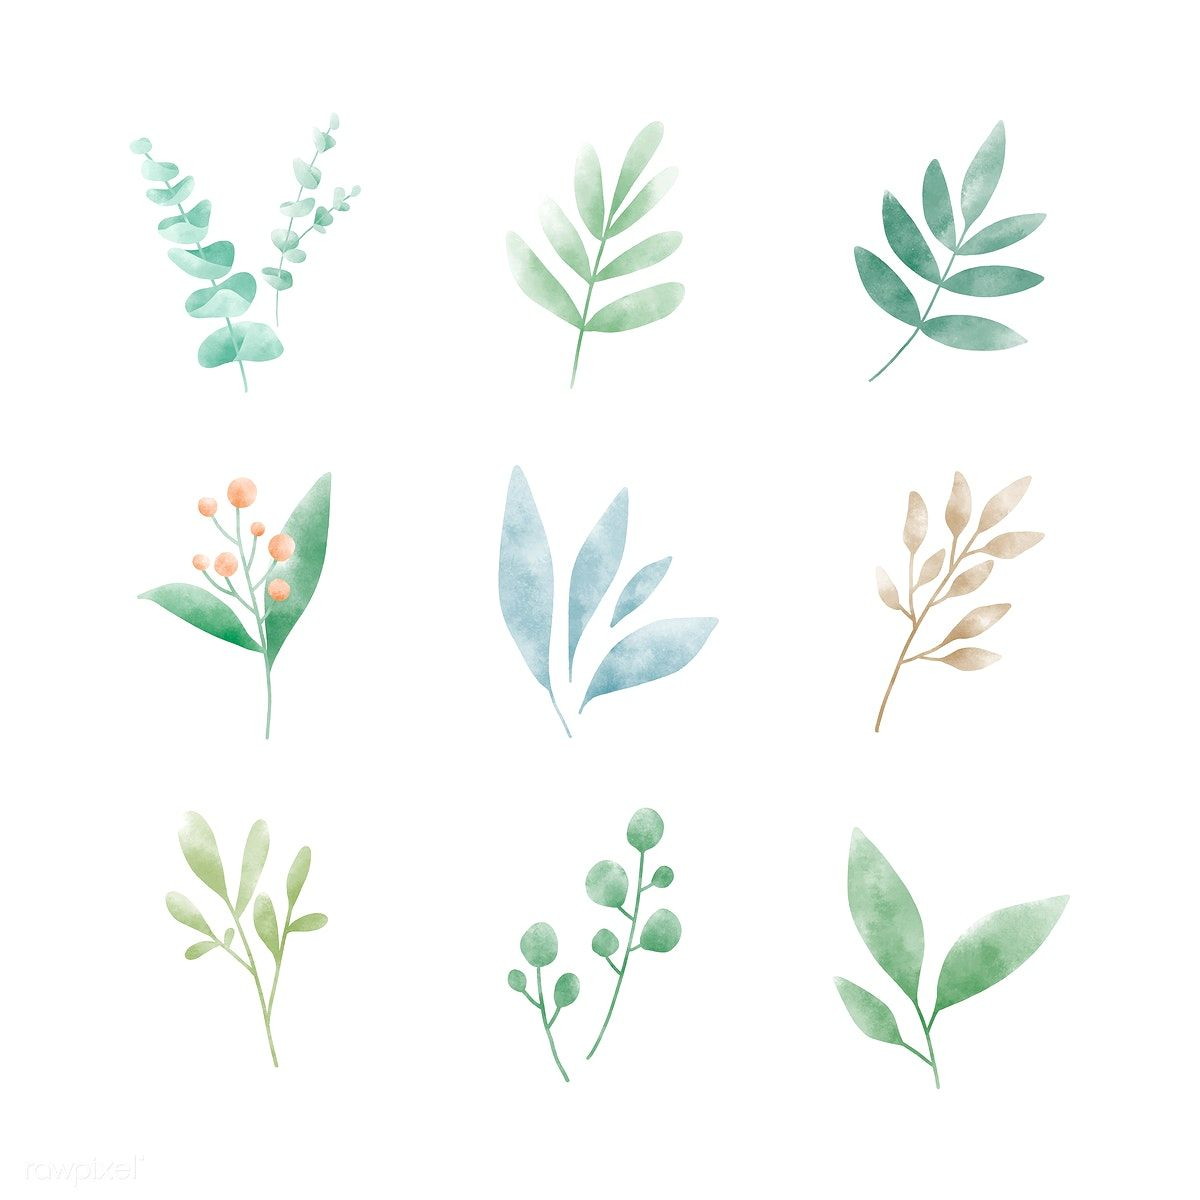 Watercolor Leaves Fern Clipart Forest Leaves Greenery Clipart